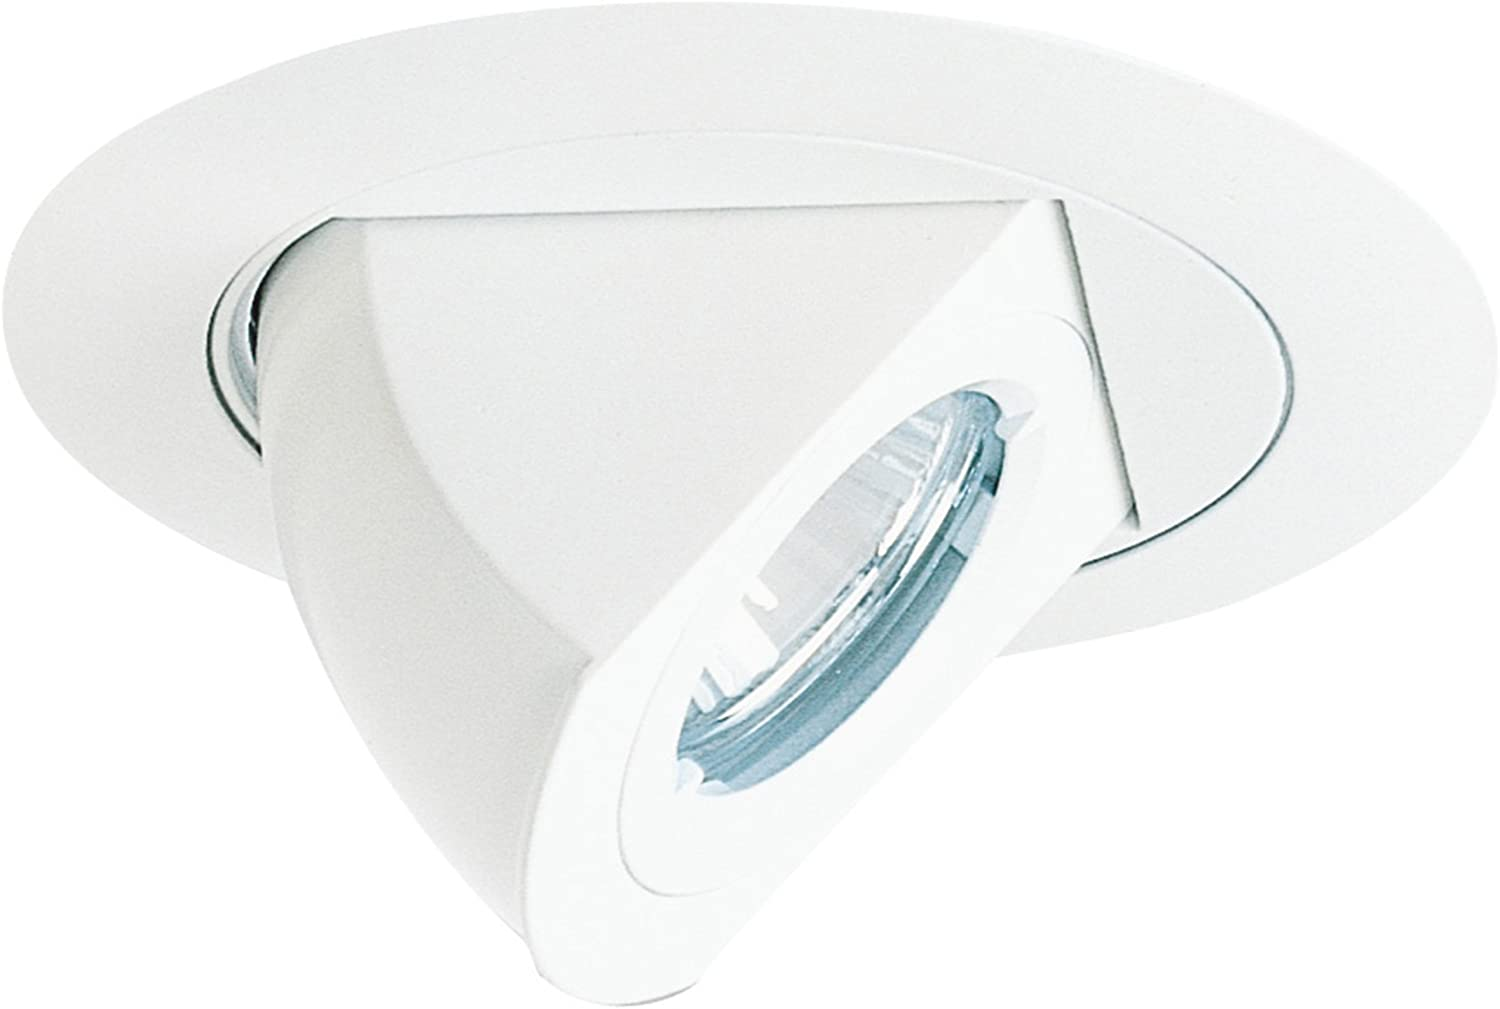 Juno Lighting 449-WH 4-Inch Aiming Elbow Recessed Trim, White